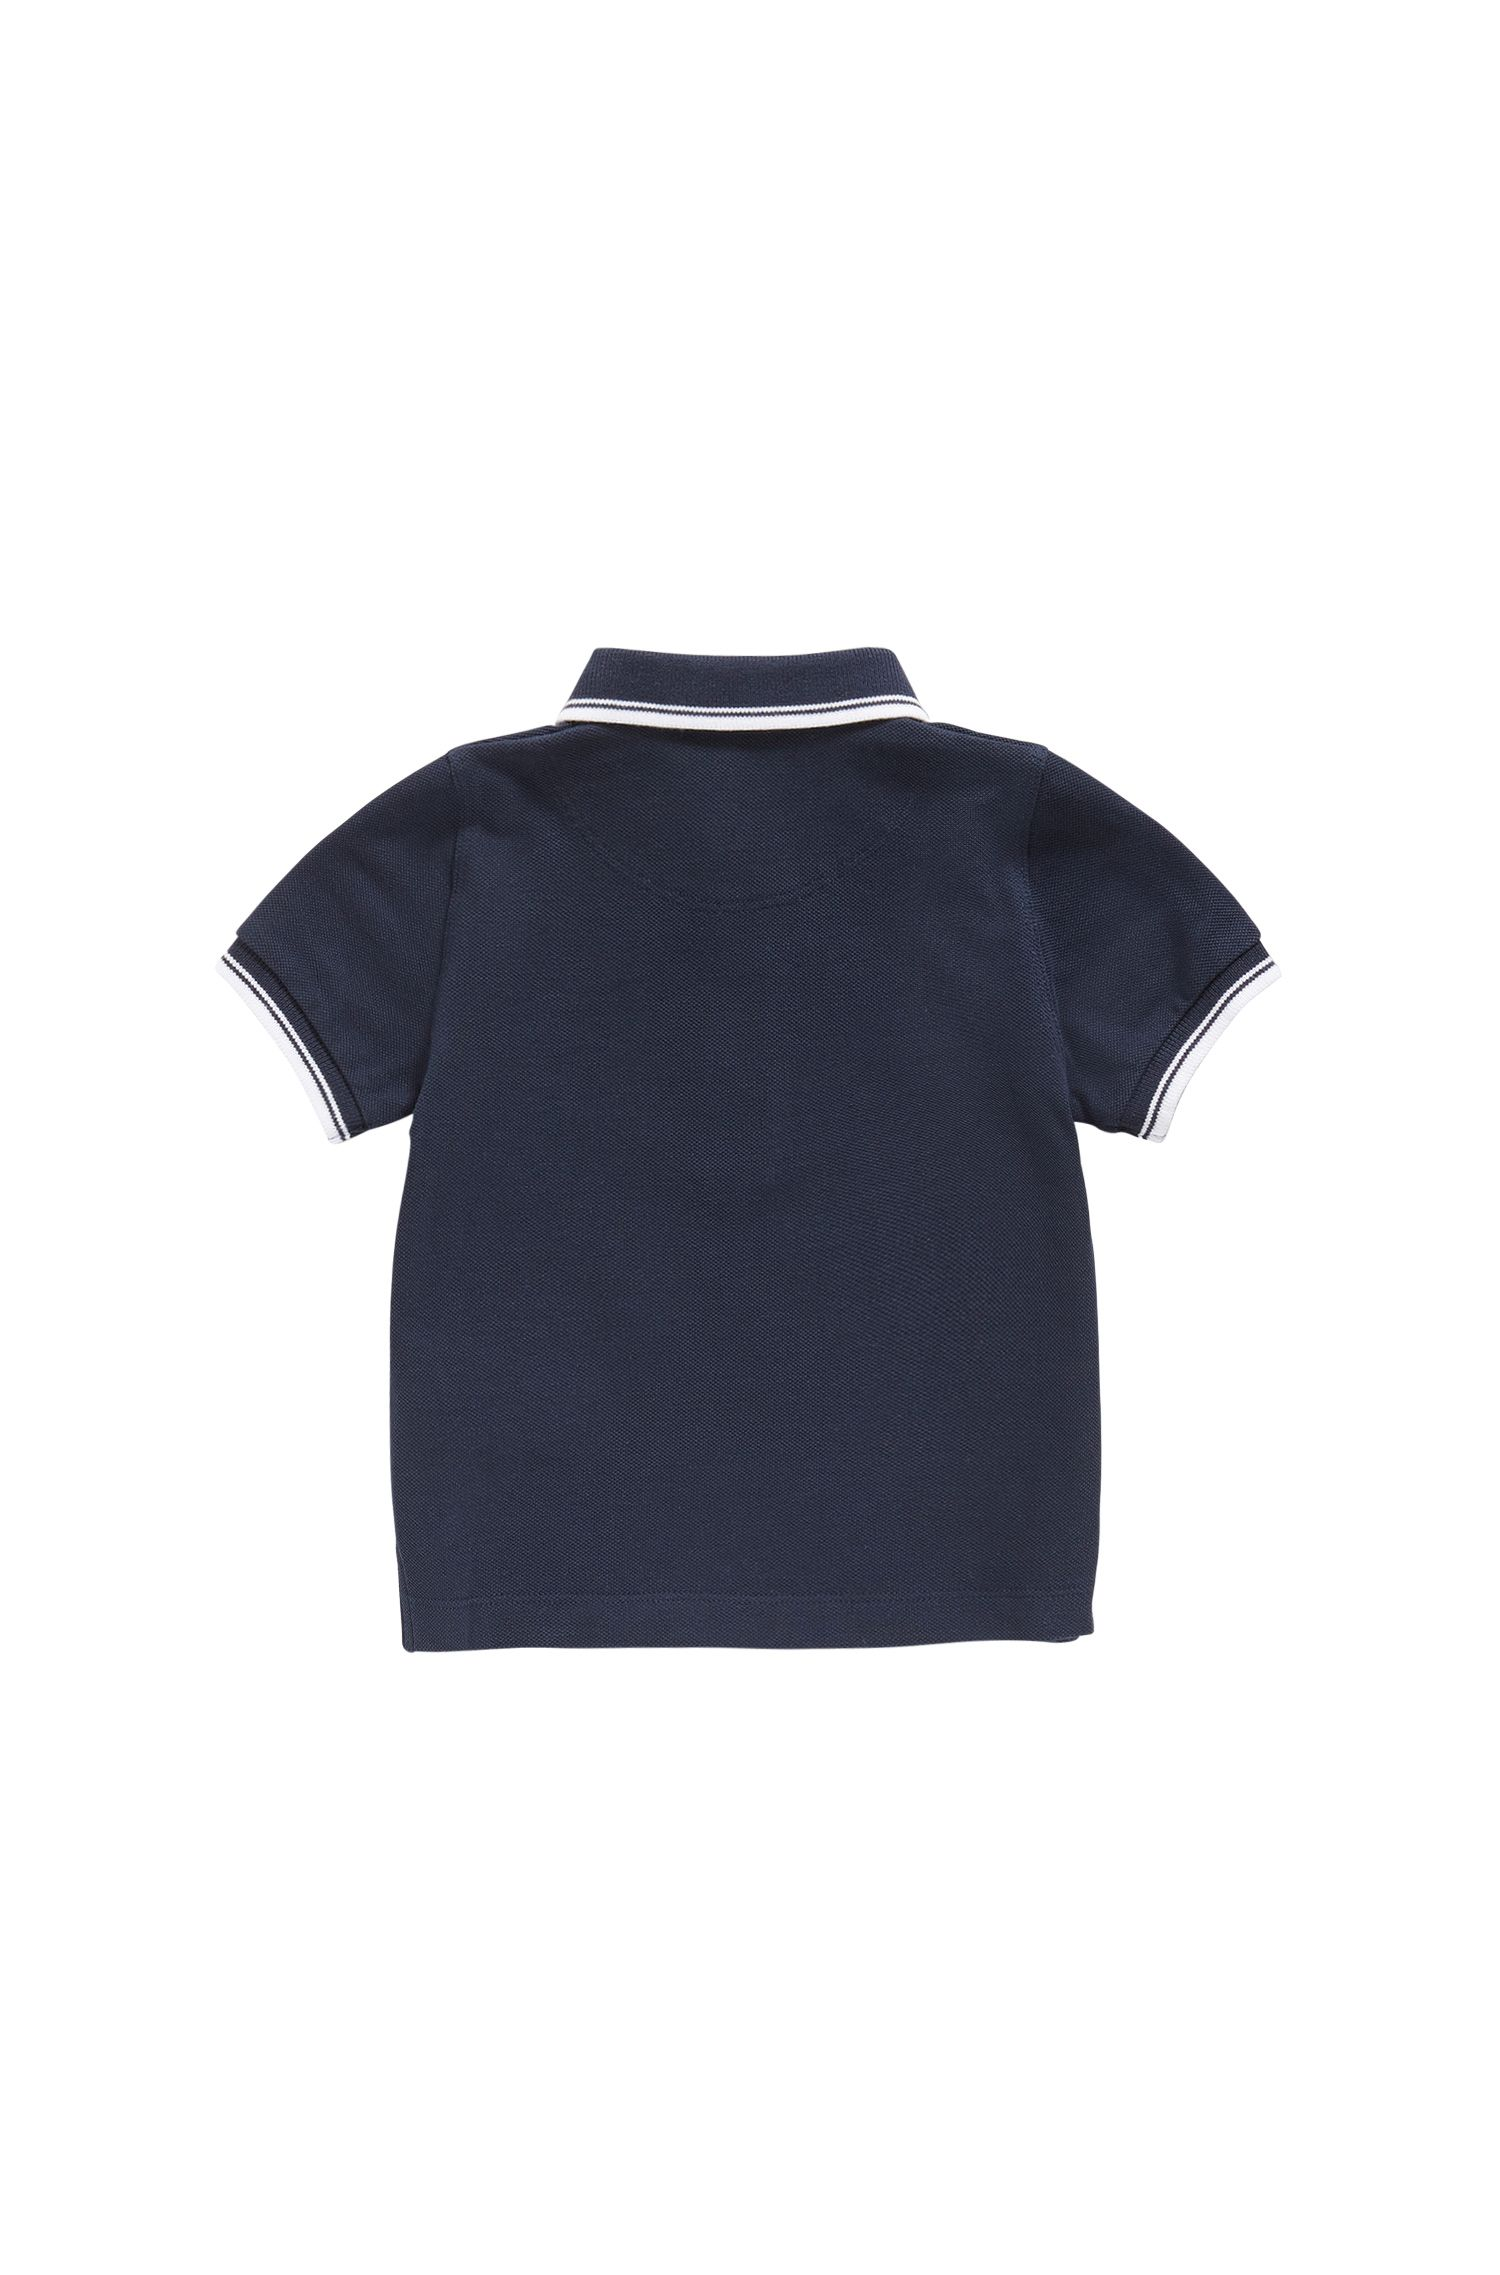 Kids' piqué cotton polo shirt with tipping